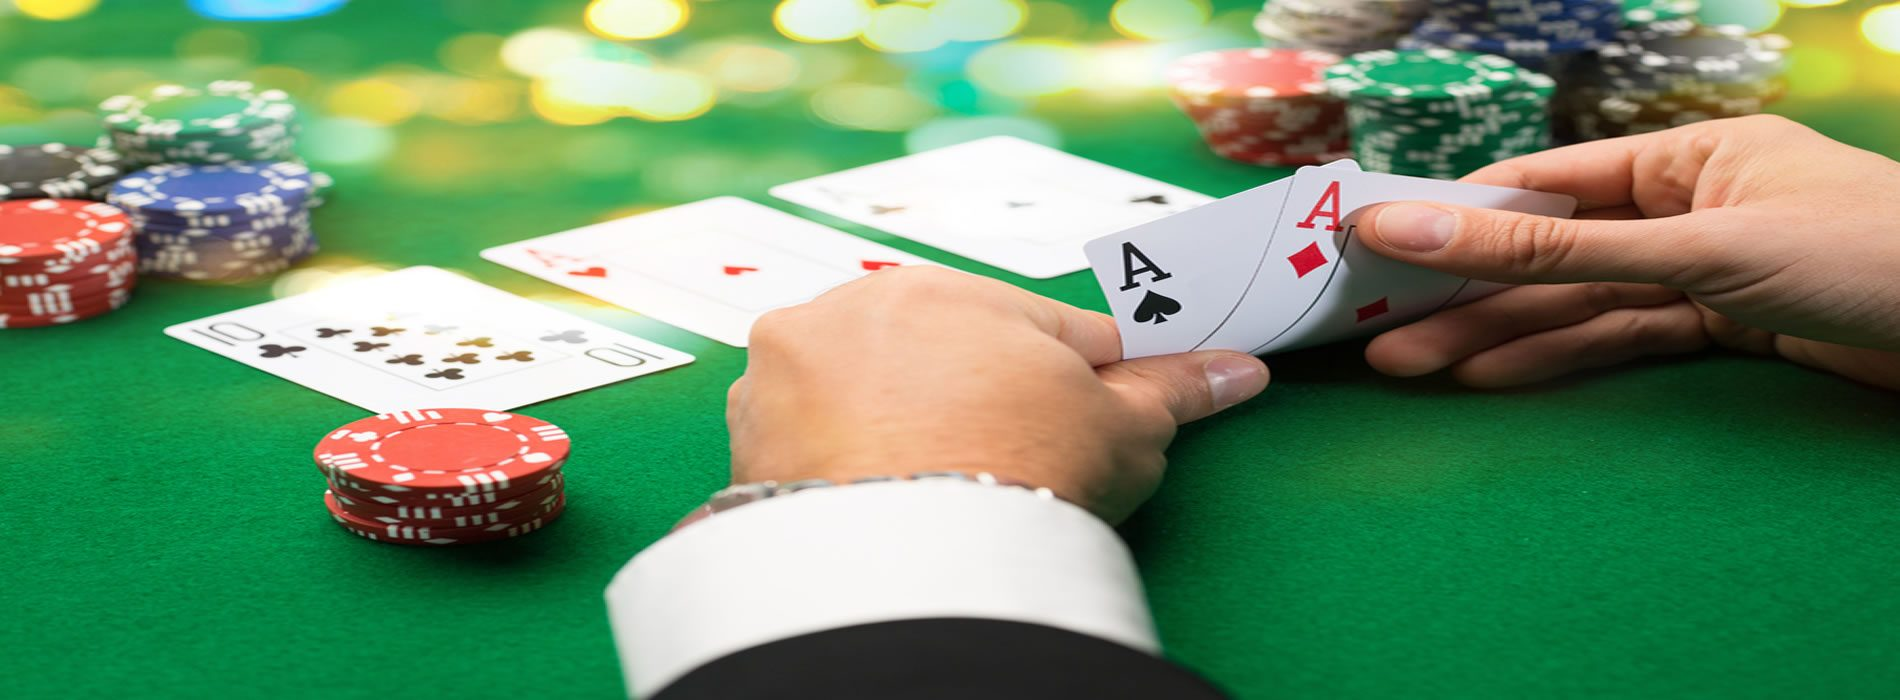 Getting the features of the Live casino